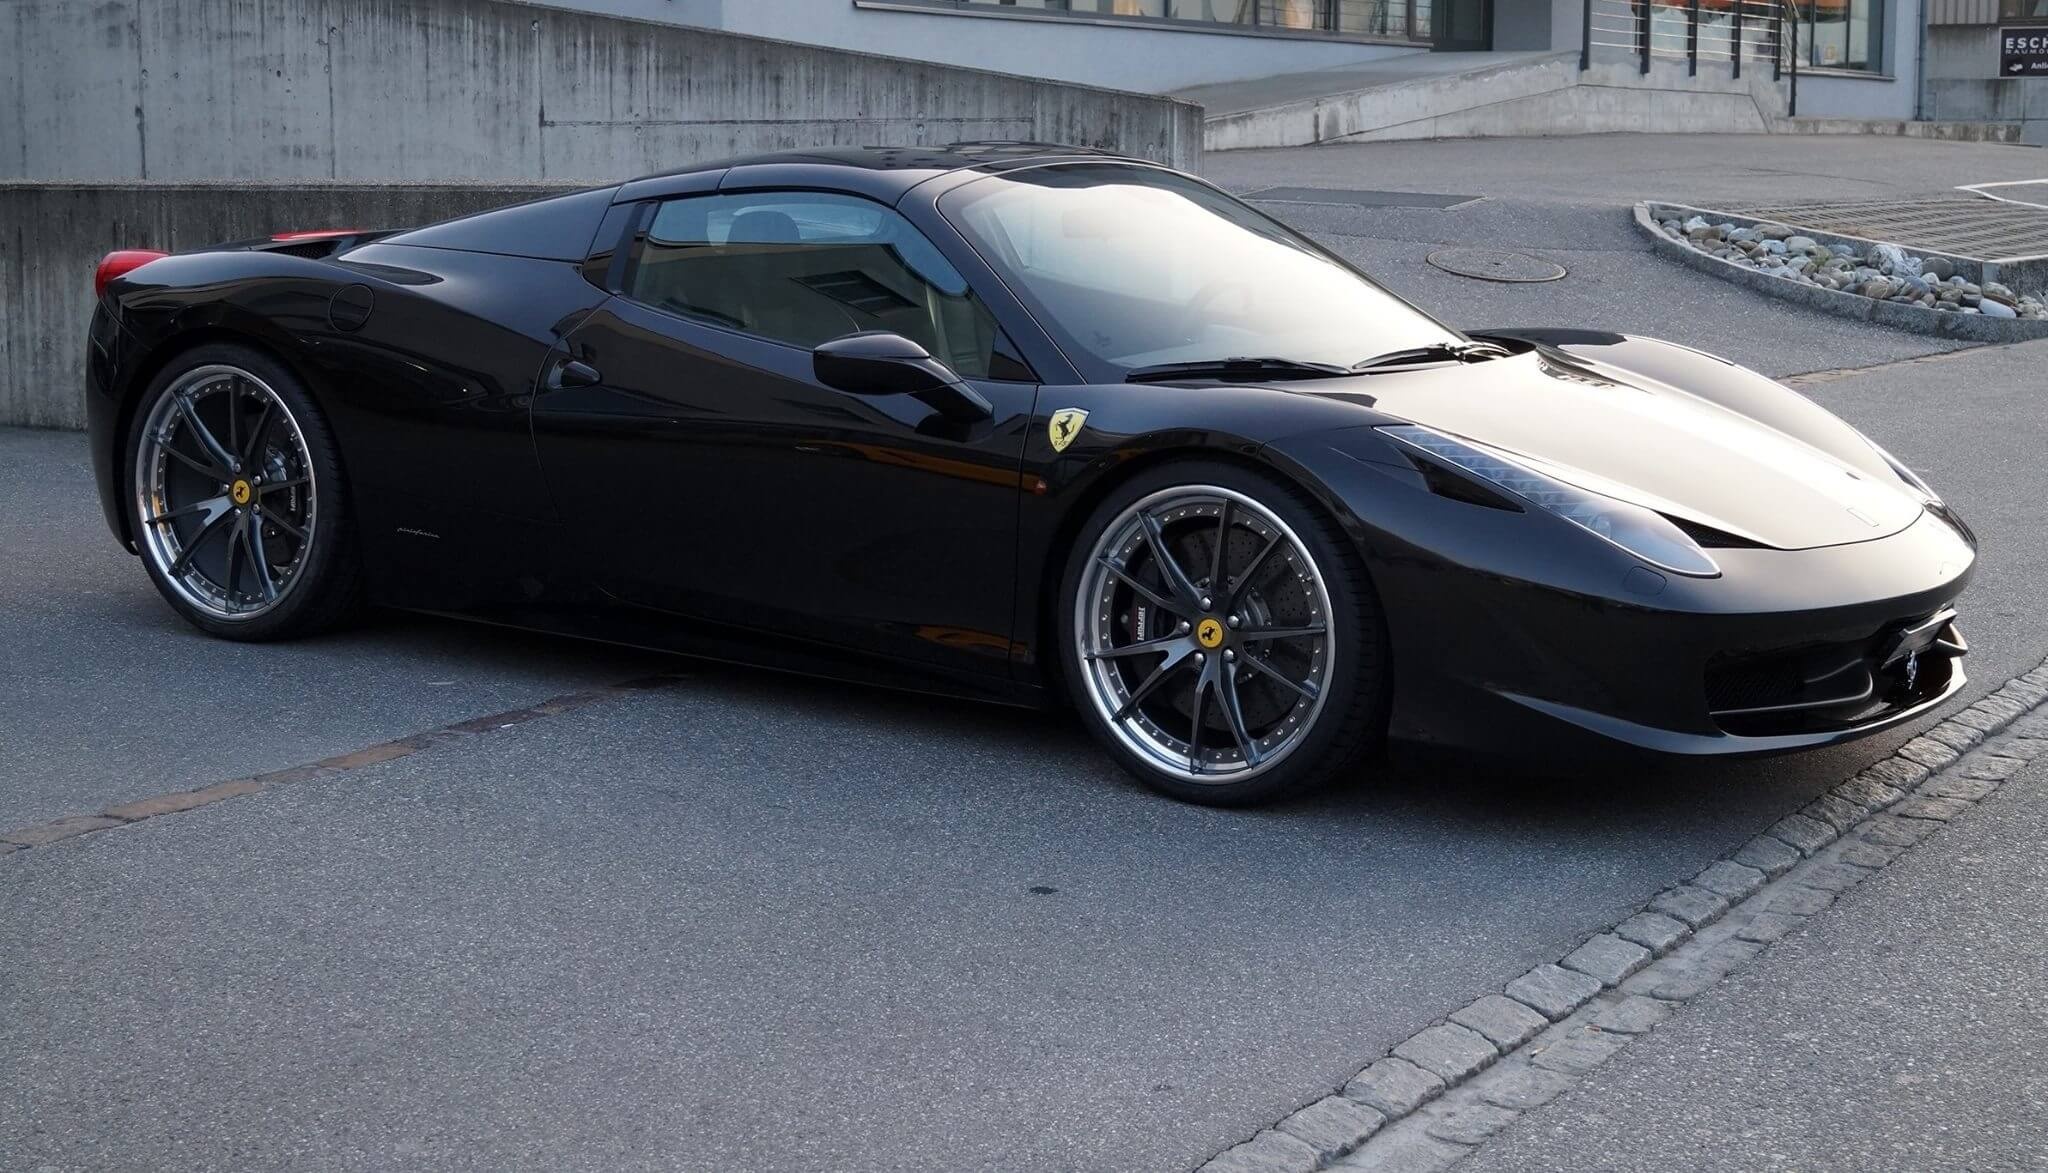 Ferrari 458 Spider With Hre S104 In Gloss Charcoal Hre Performance